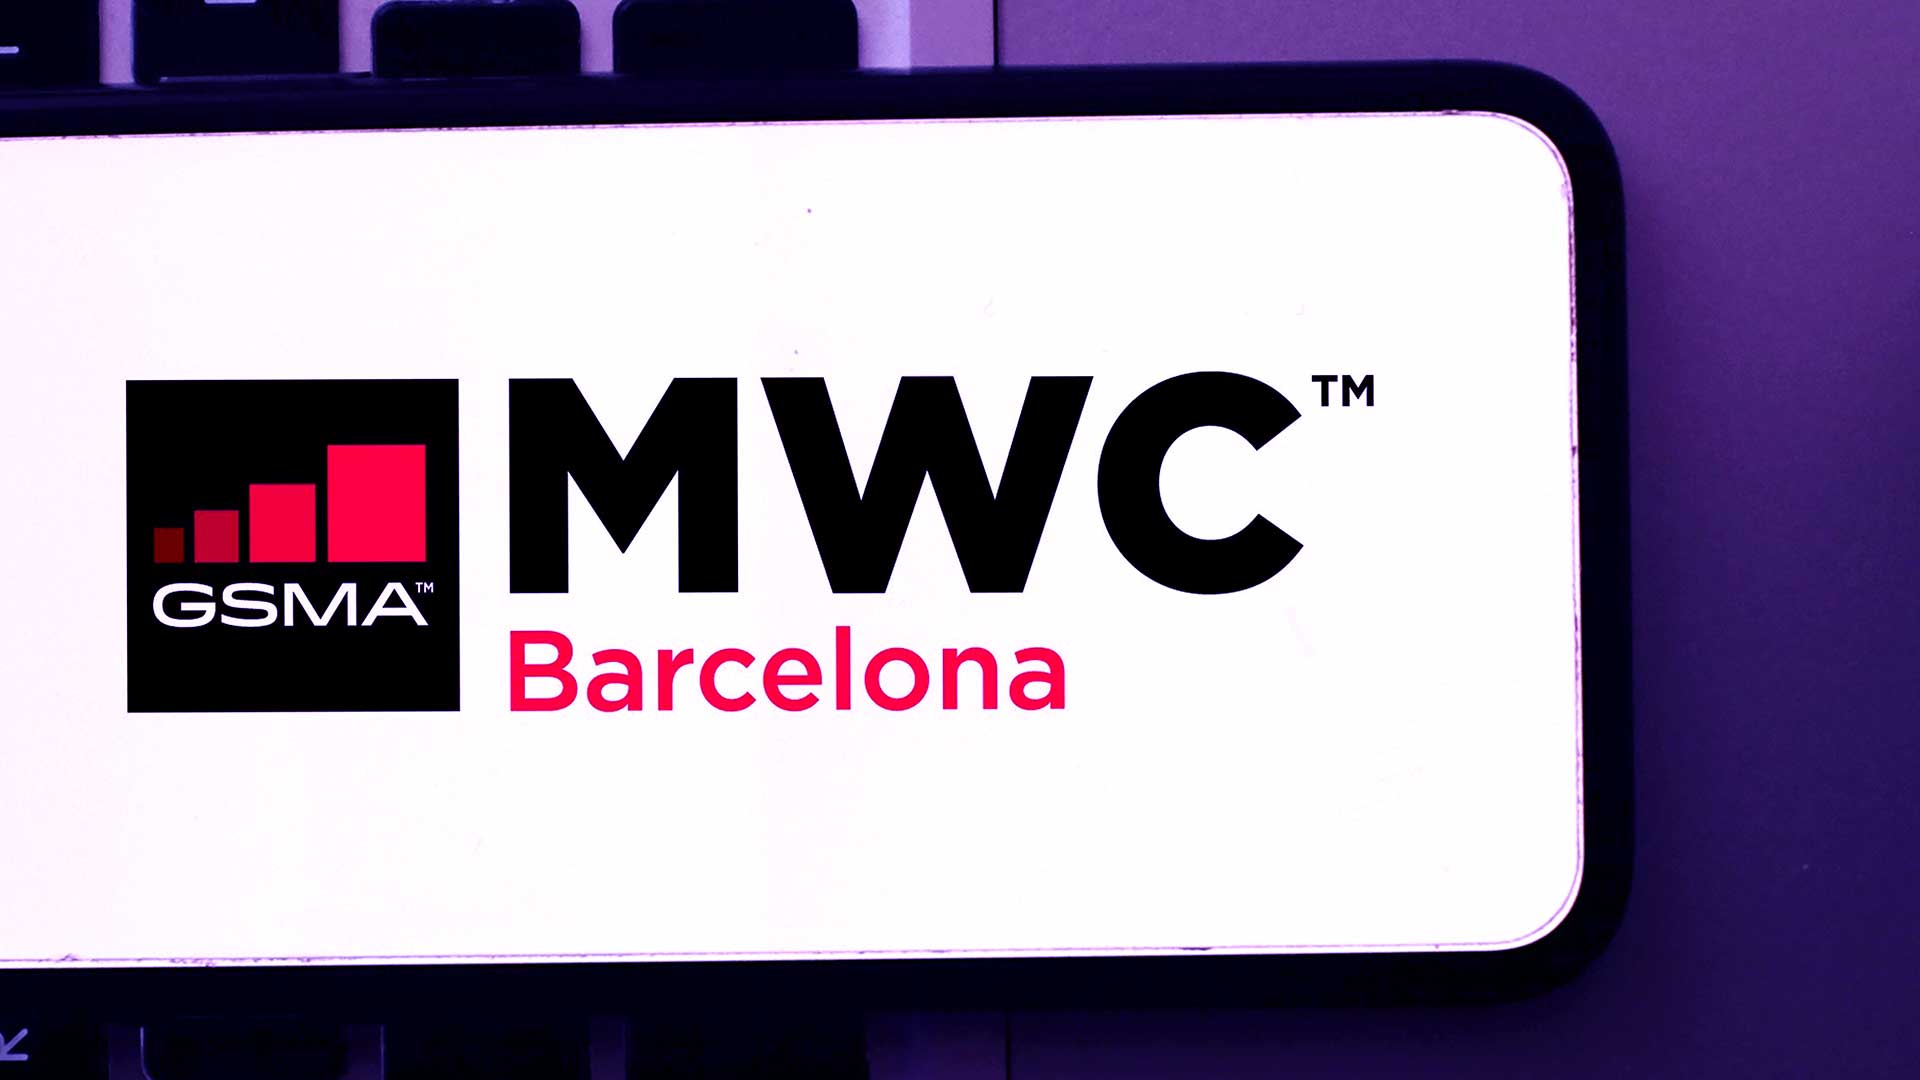 MWC show was one of the first big trade shows to make a comeback this year. Image: